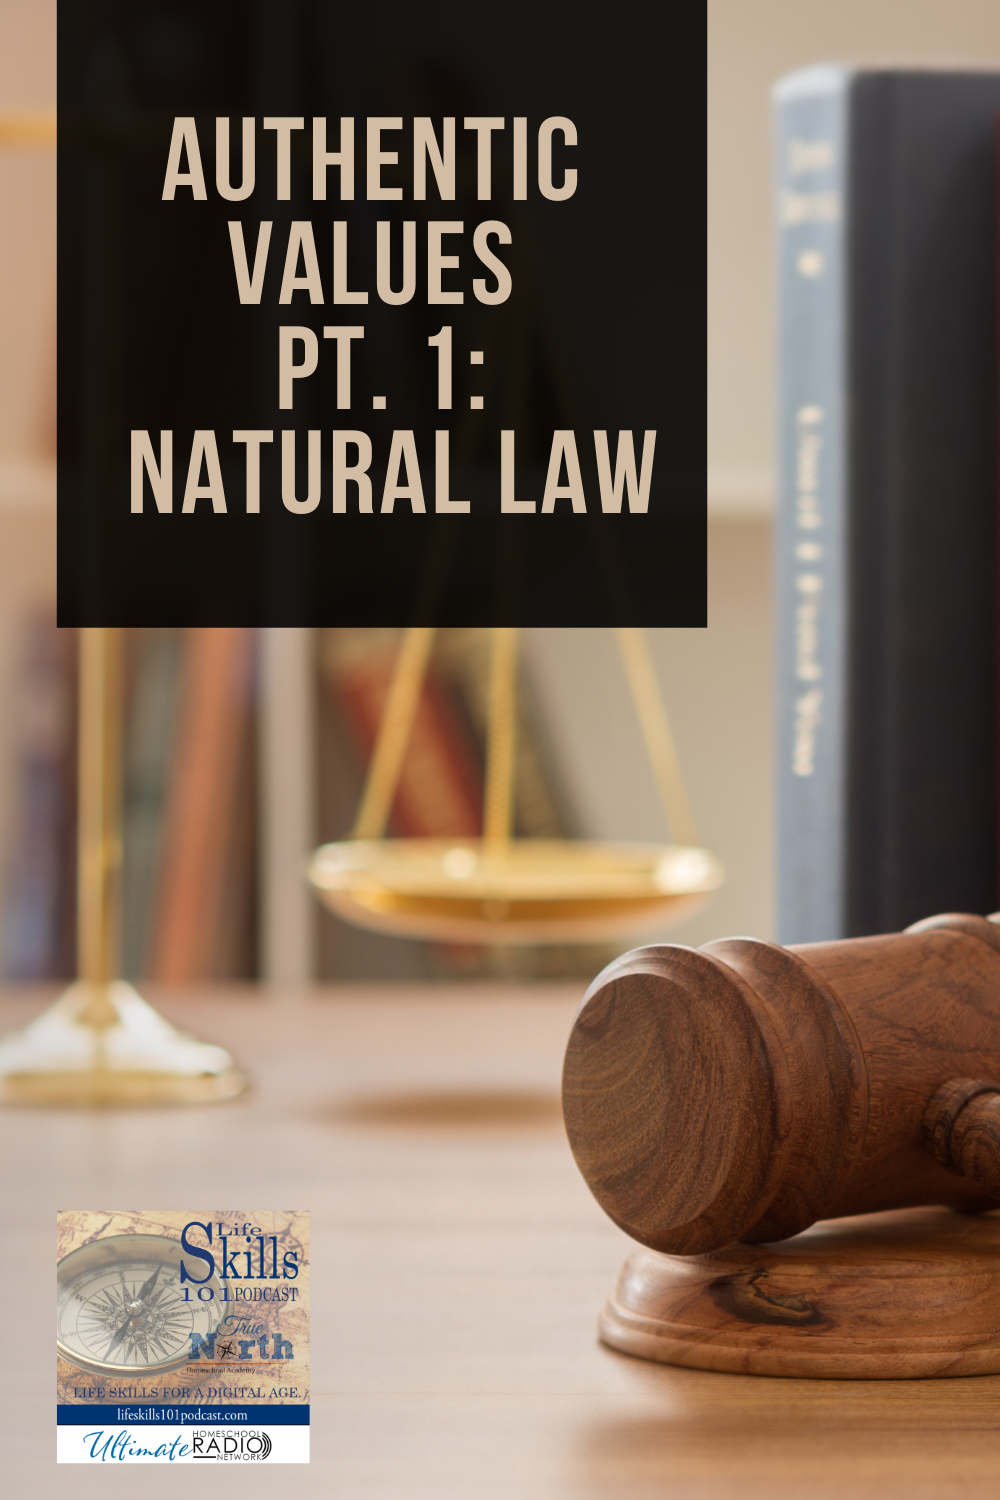 Today we are talking about Natural Laws vs Synthetic Values – talking about the life skills necessary to maintain a free republic.